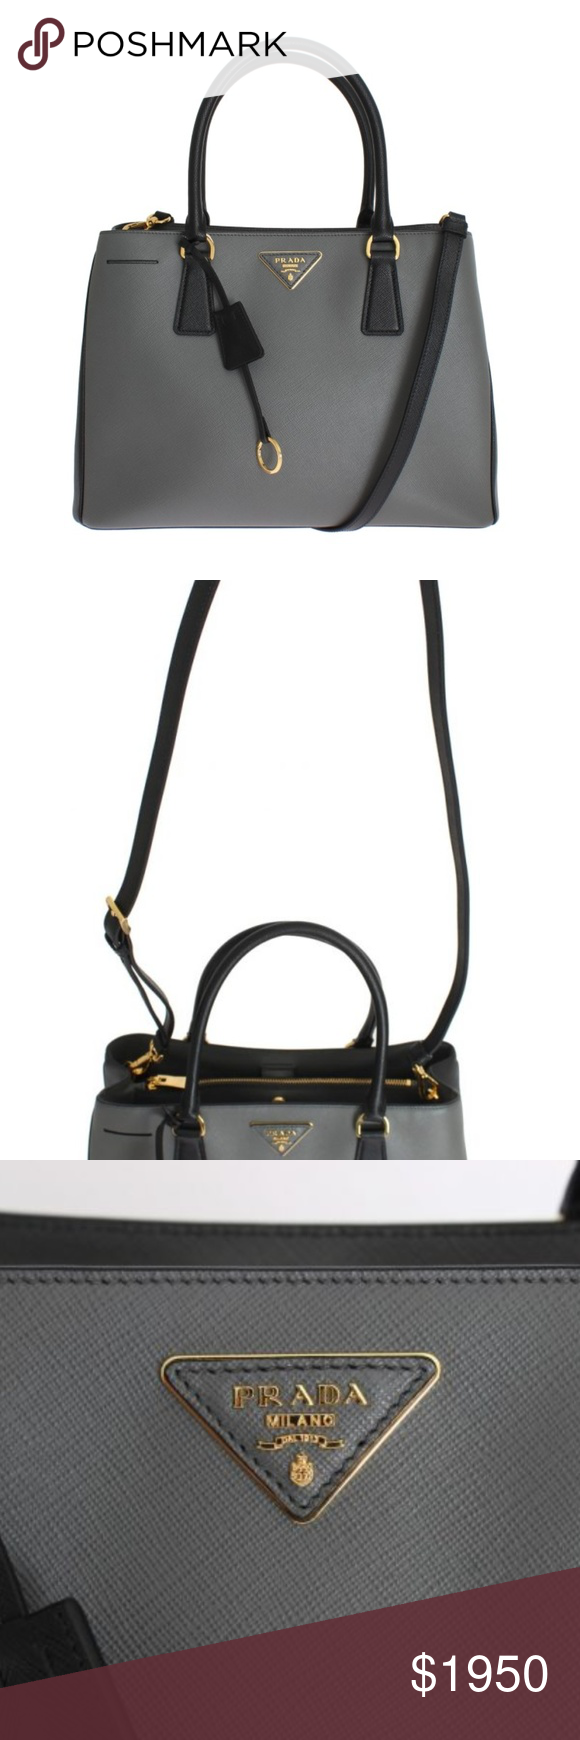 3484ff21b9174c PRADA SAFFIANO LUX BAG Gorgeous brand new with tags, 100% Authentic Prada  bag.